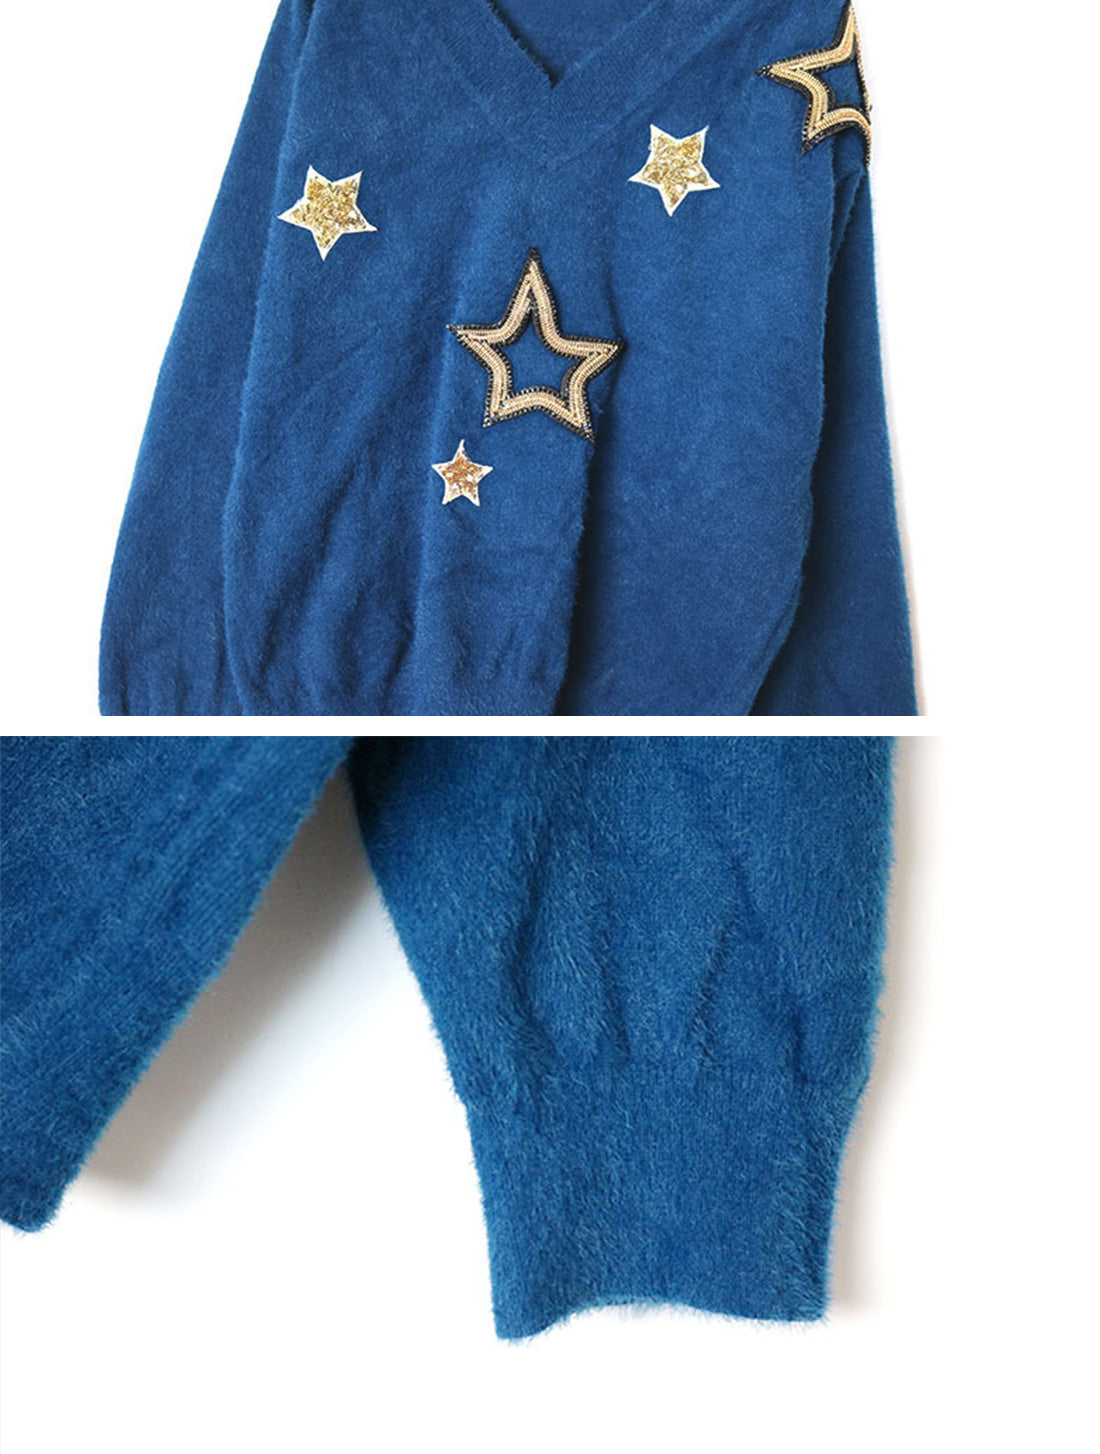 Obviously Edgy Star Embroidered Sweater Top Details 3